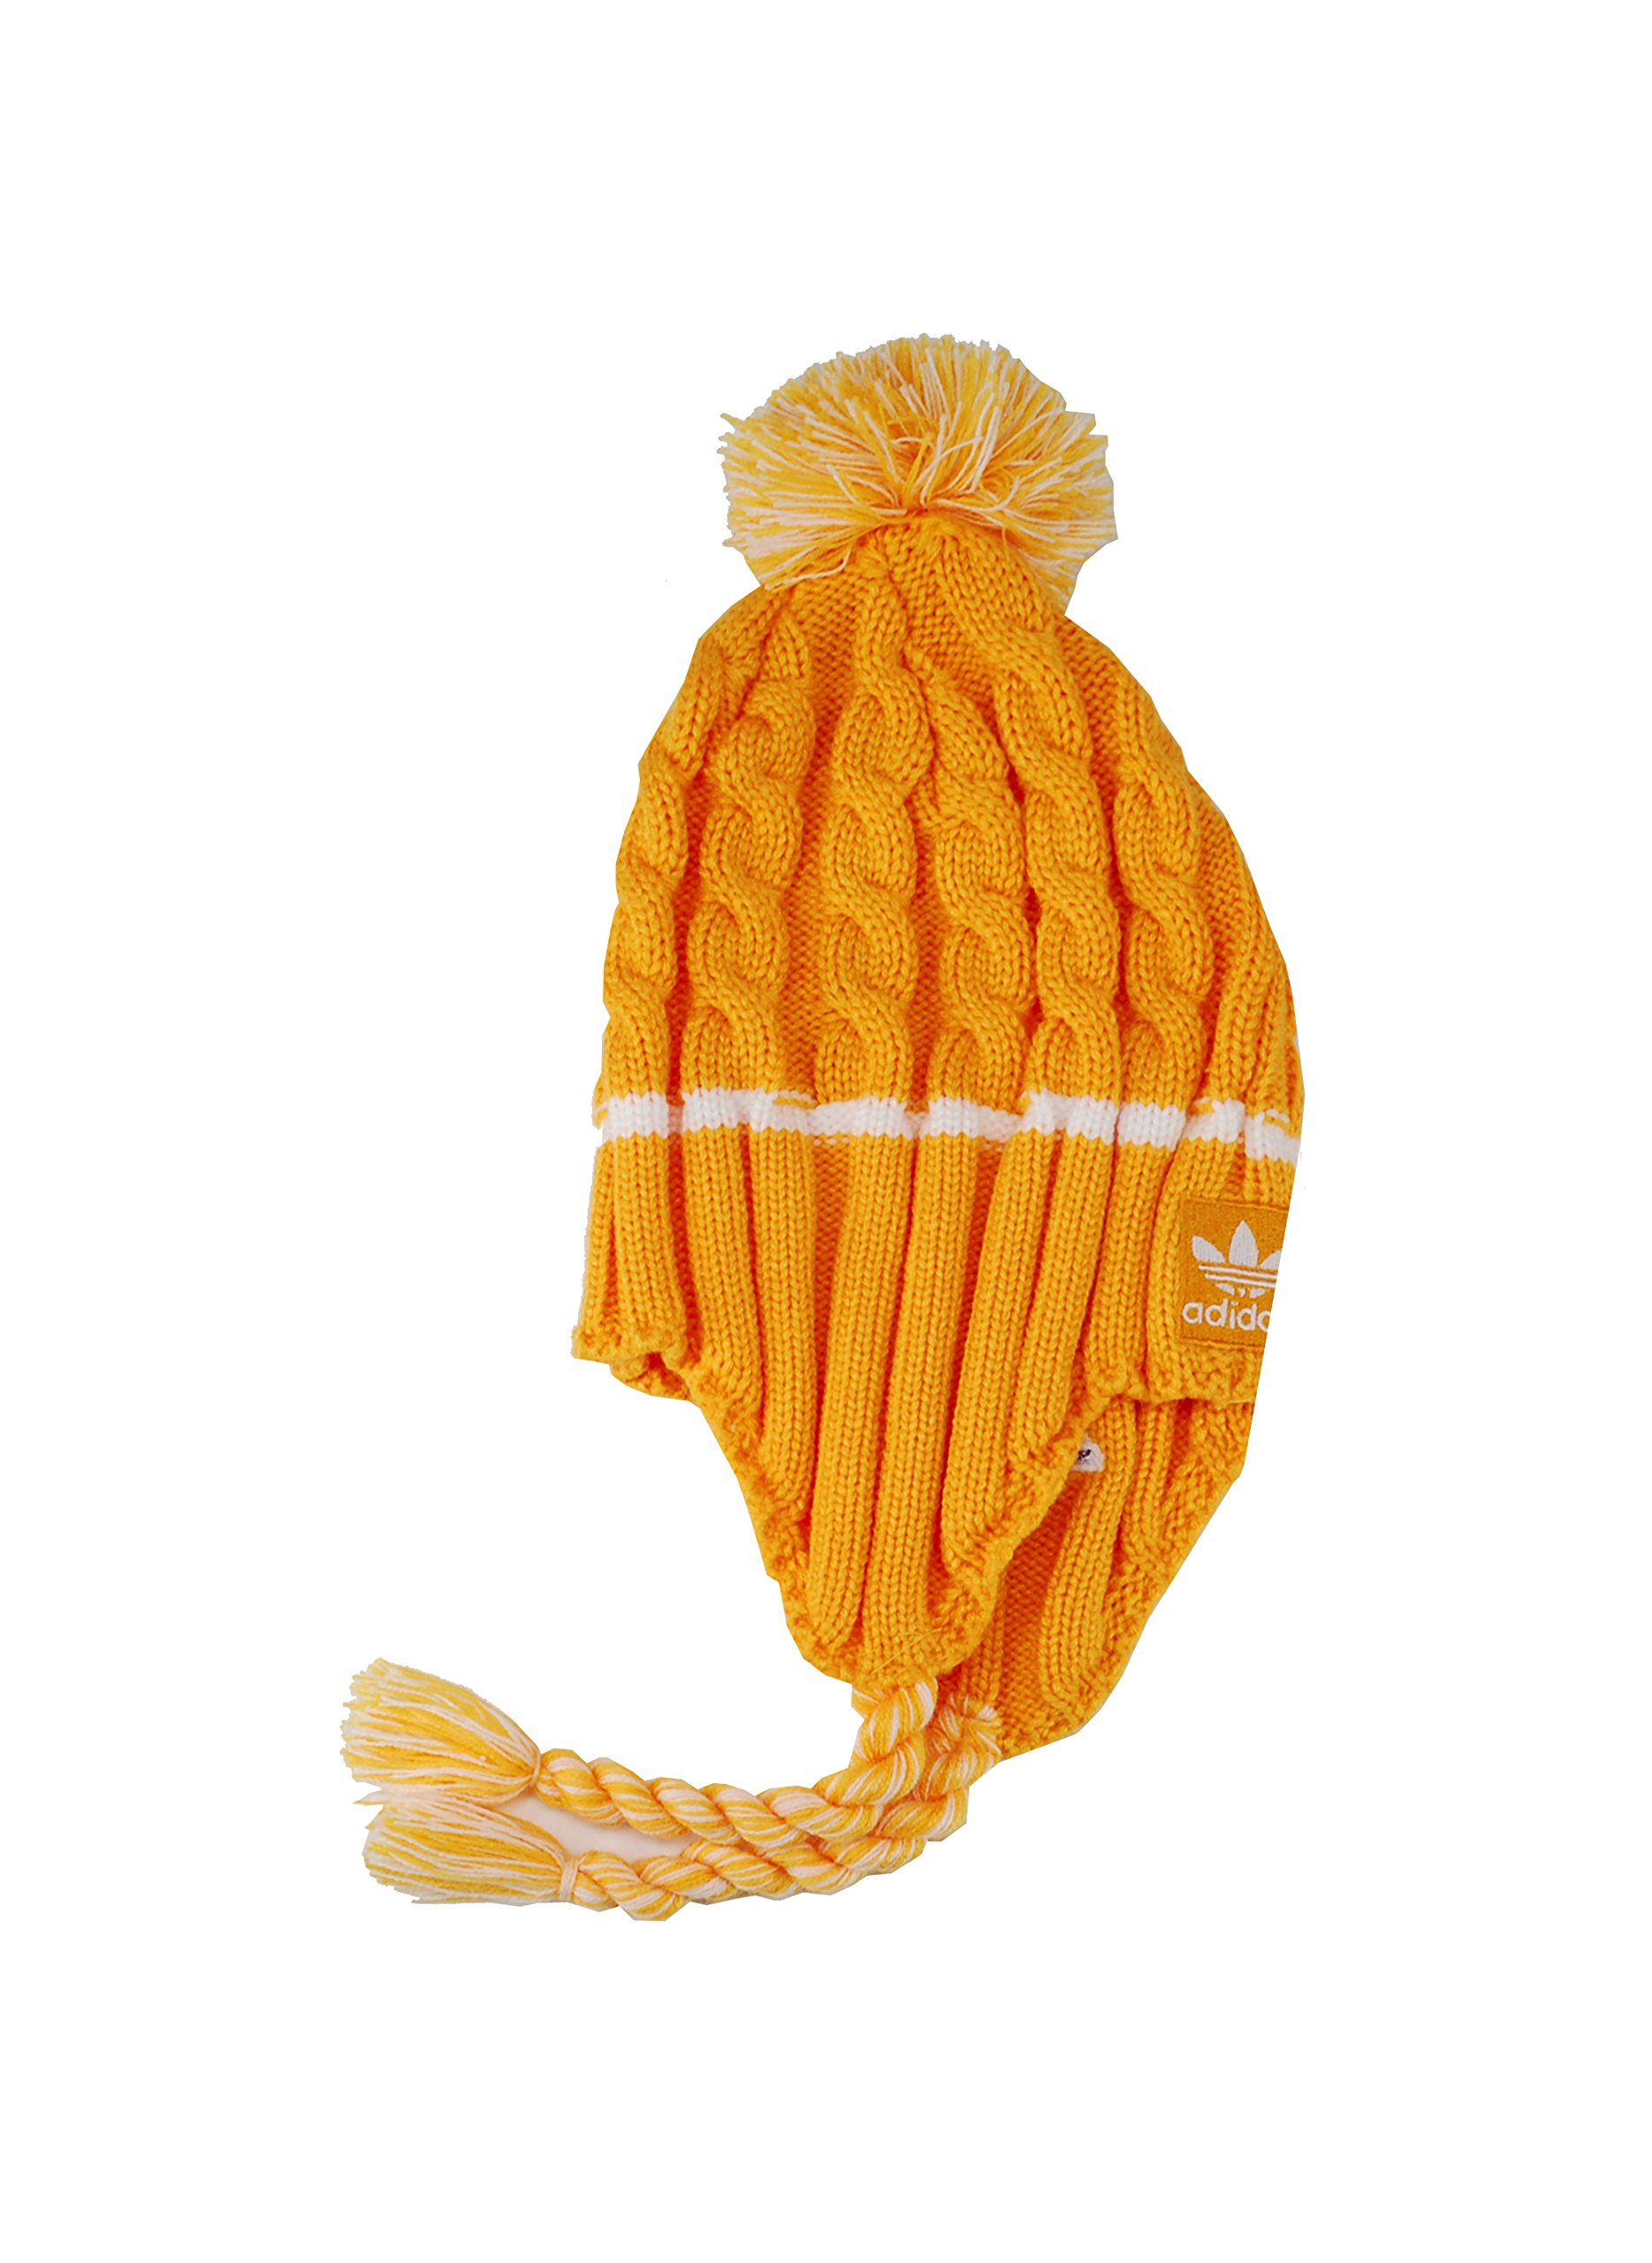 Adidas Kid's Los Angeles Lakers Headwear Tassle Gold/White Beanie by adidas (Image #2)